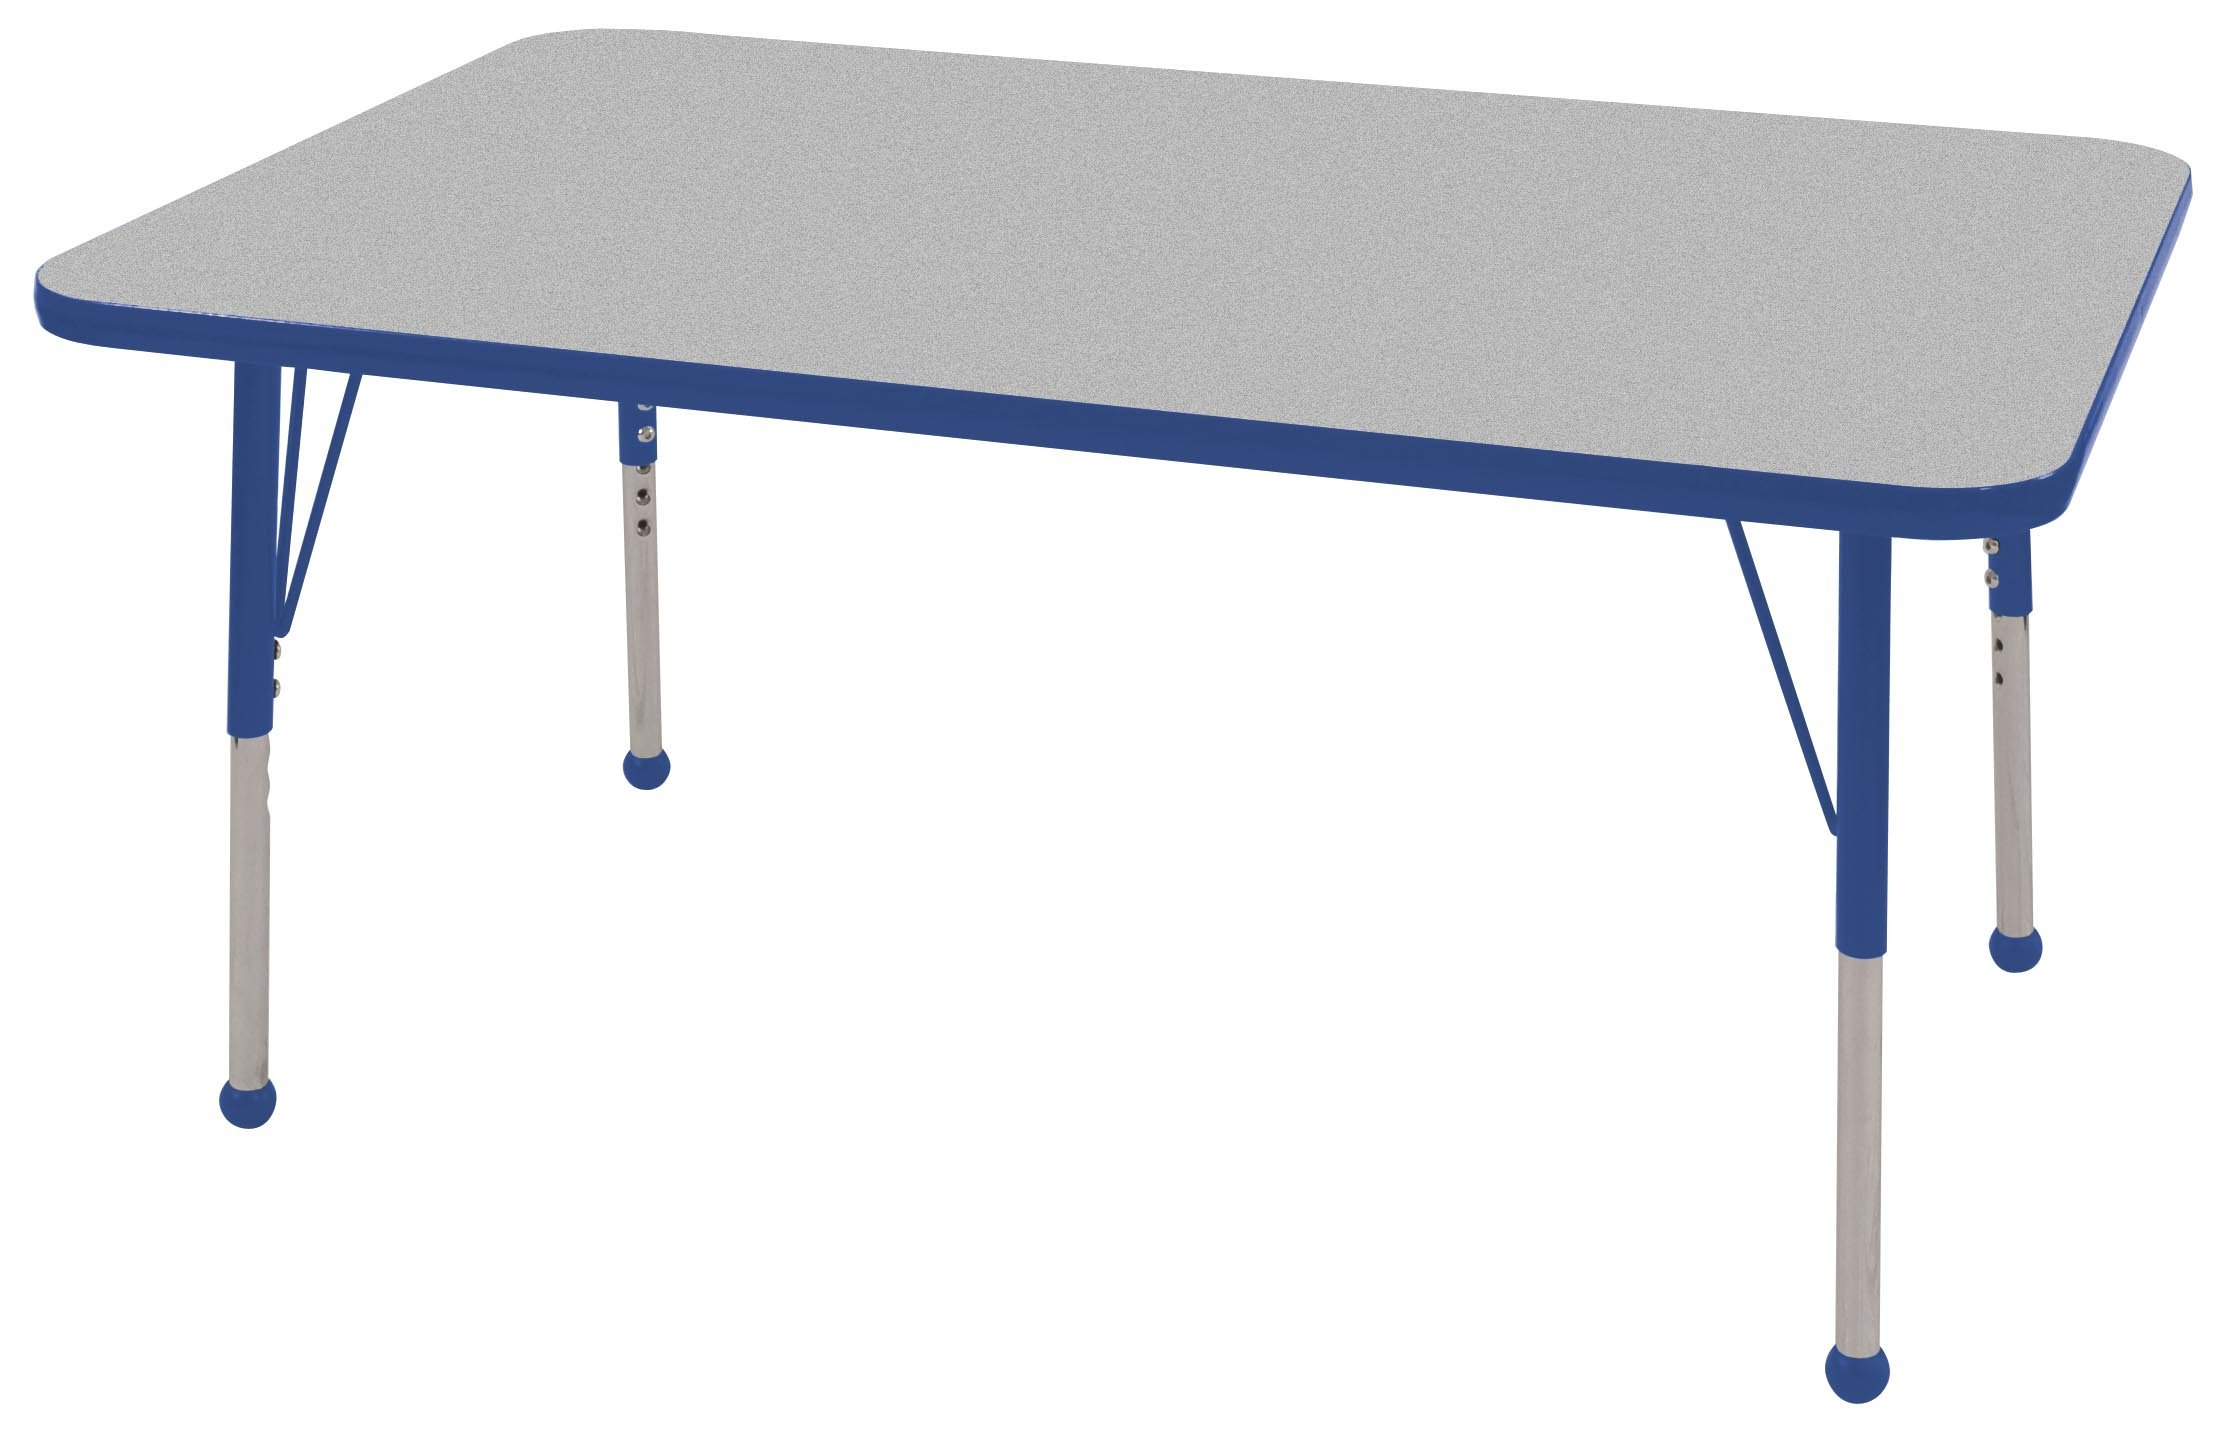 ECR4Kids T-Mold 30'' x 48'' Rectangular Activity School Table, Standard Legs w/ Ball Glides, Adjustable Height 19-30 inch (Grey/Blue) by ECR4Kids